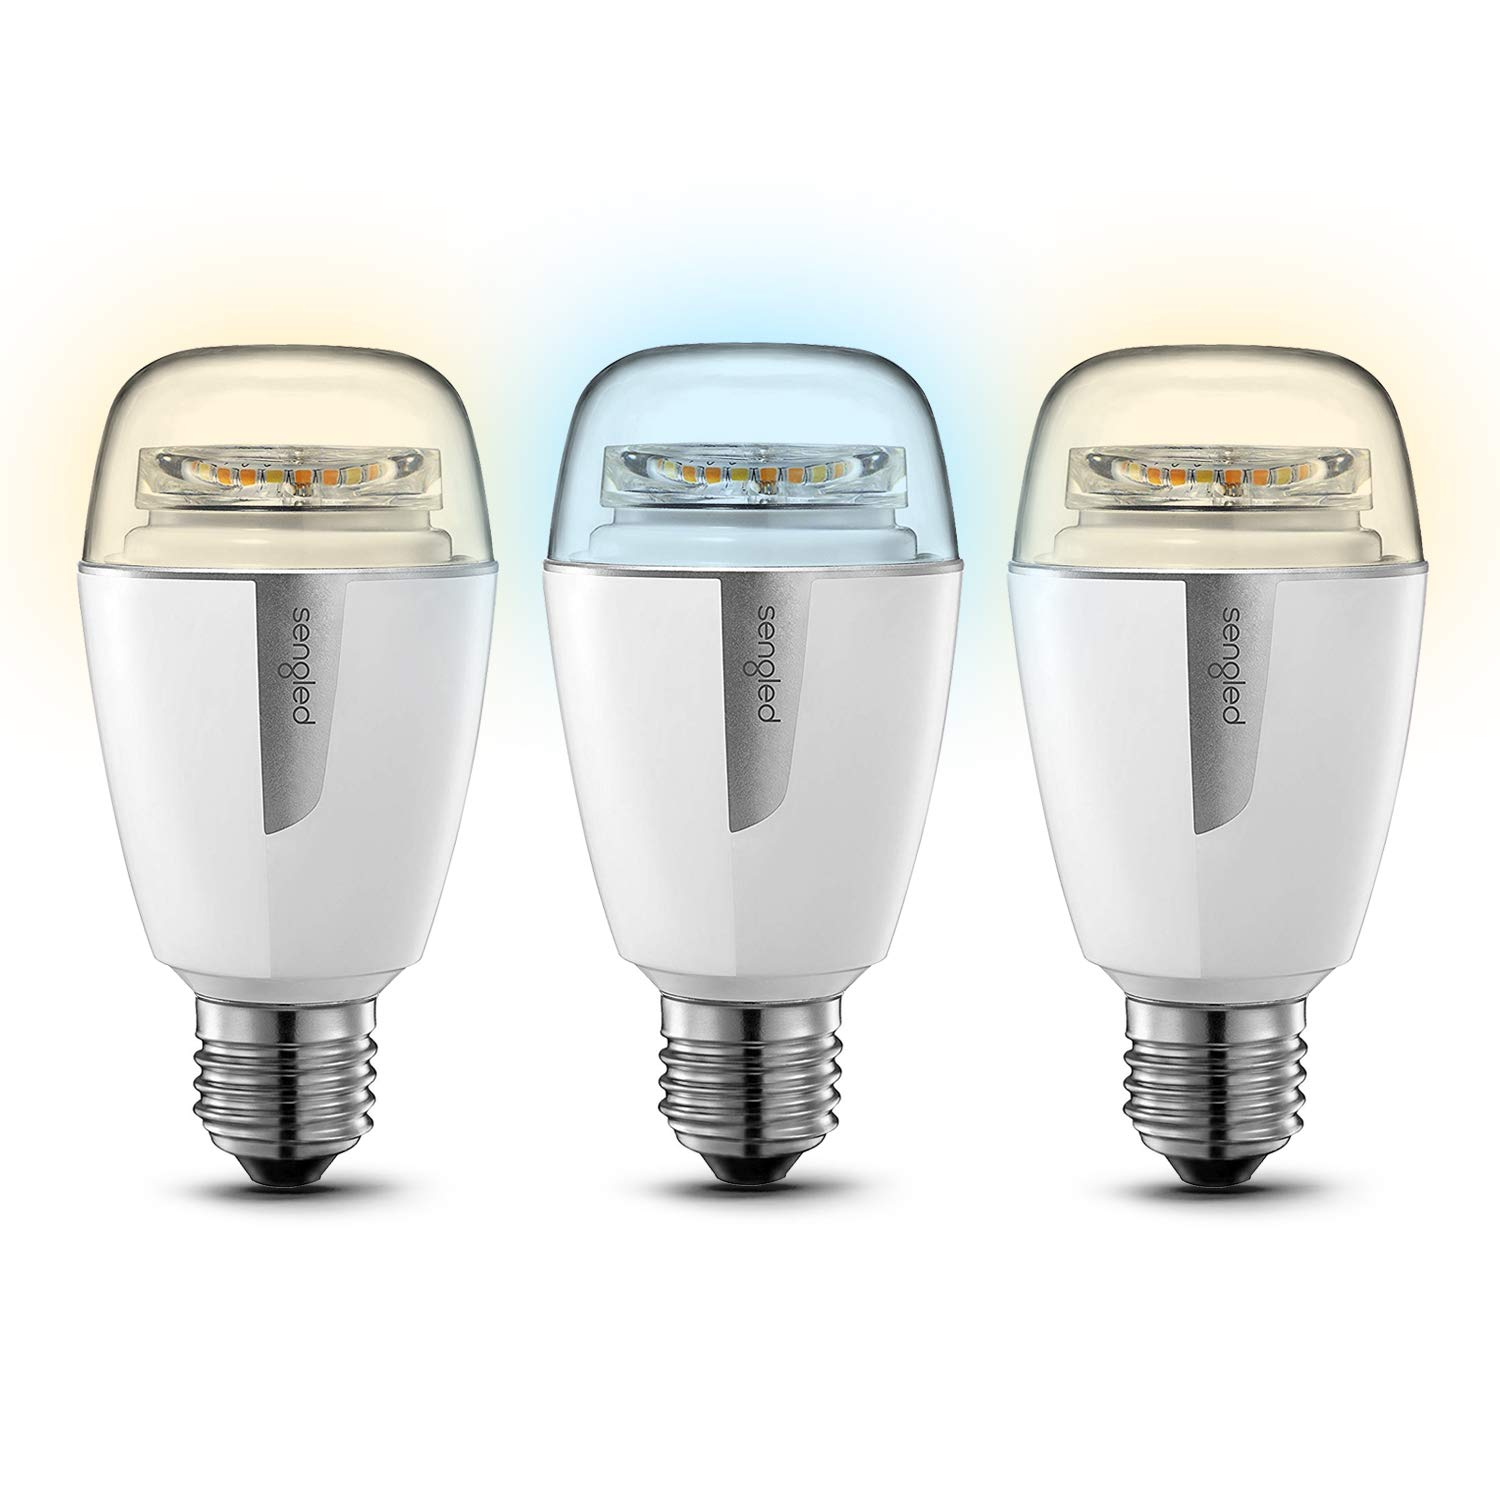 Sengled Element Plus Smart Led Light Bulb Hub Required A19 Parallel Circuit And The Lightbulbs Will Not If Switch Does Dimmable Tunable White 2700 6500k 60w Equivalent Works Alexa Echo Smartthings